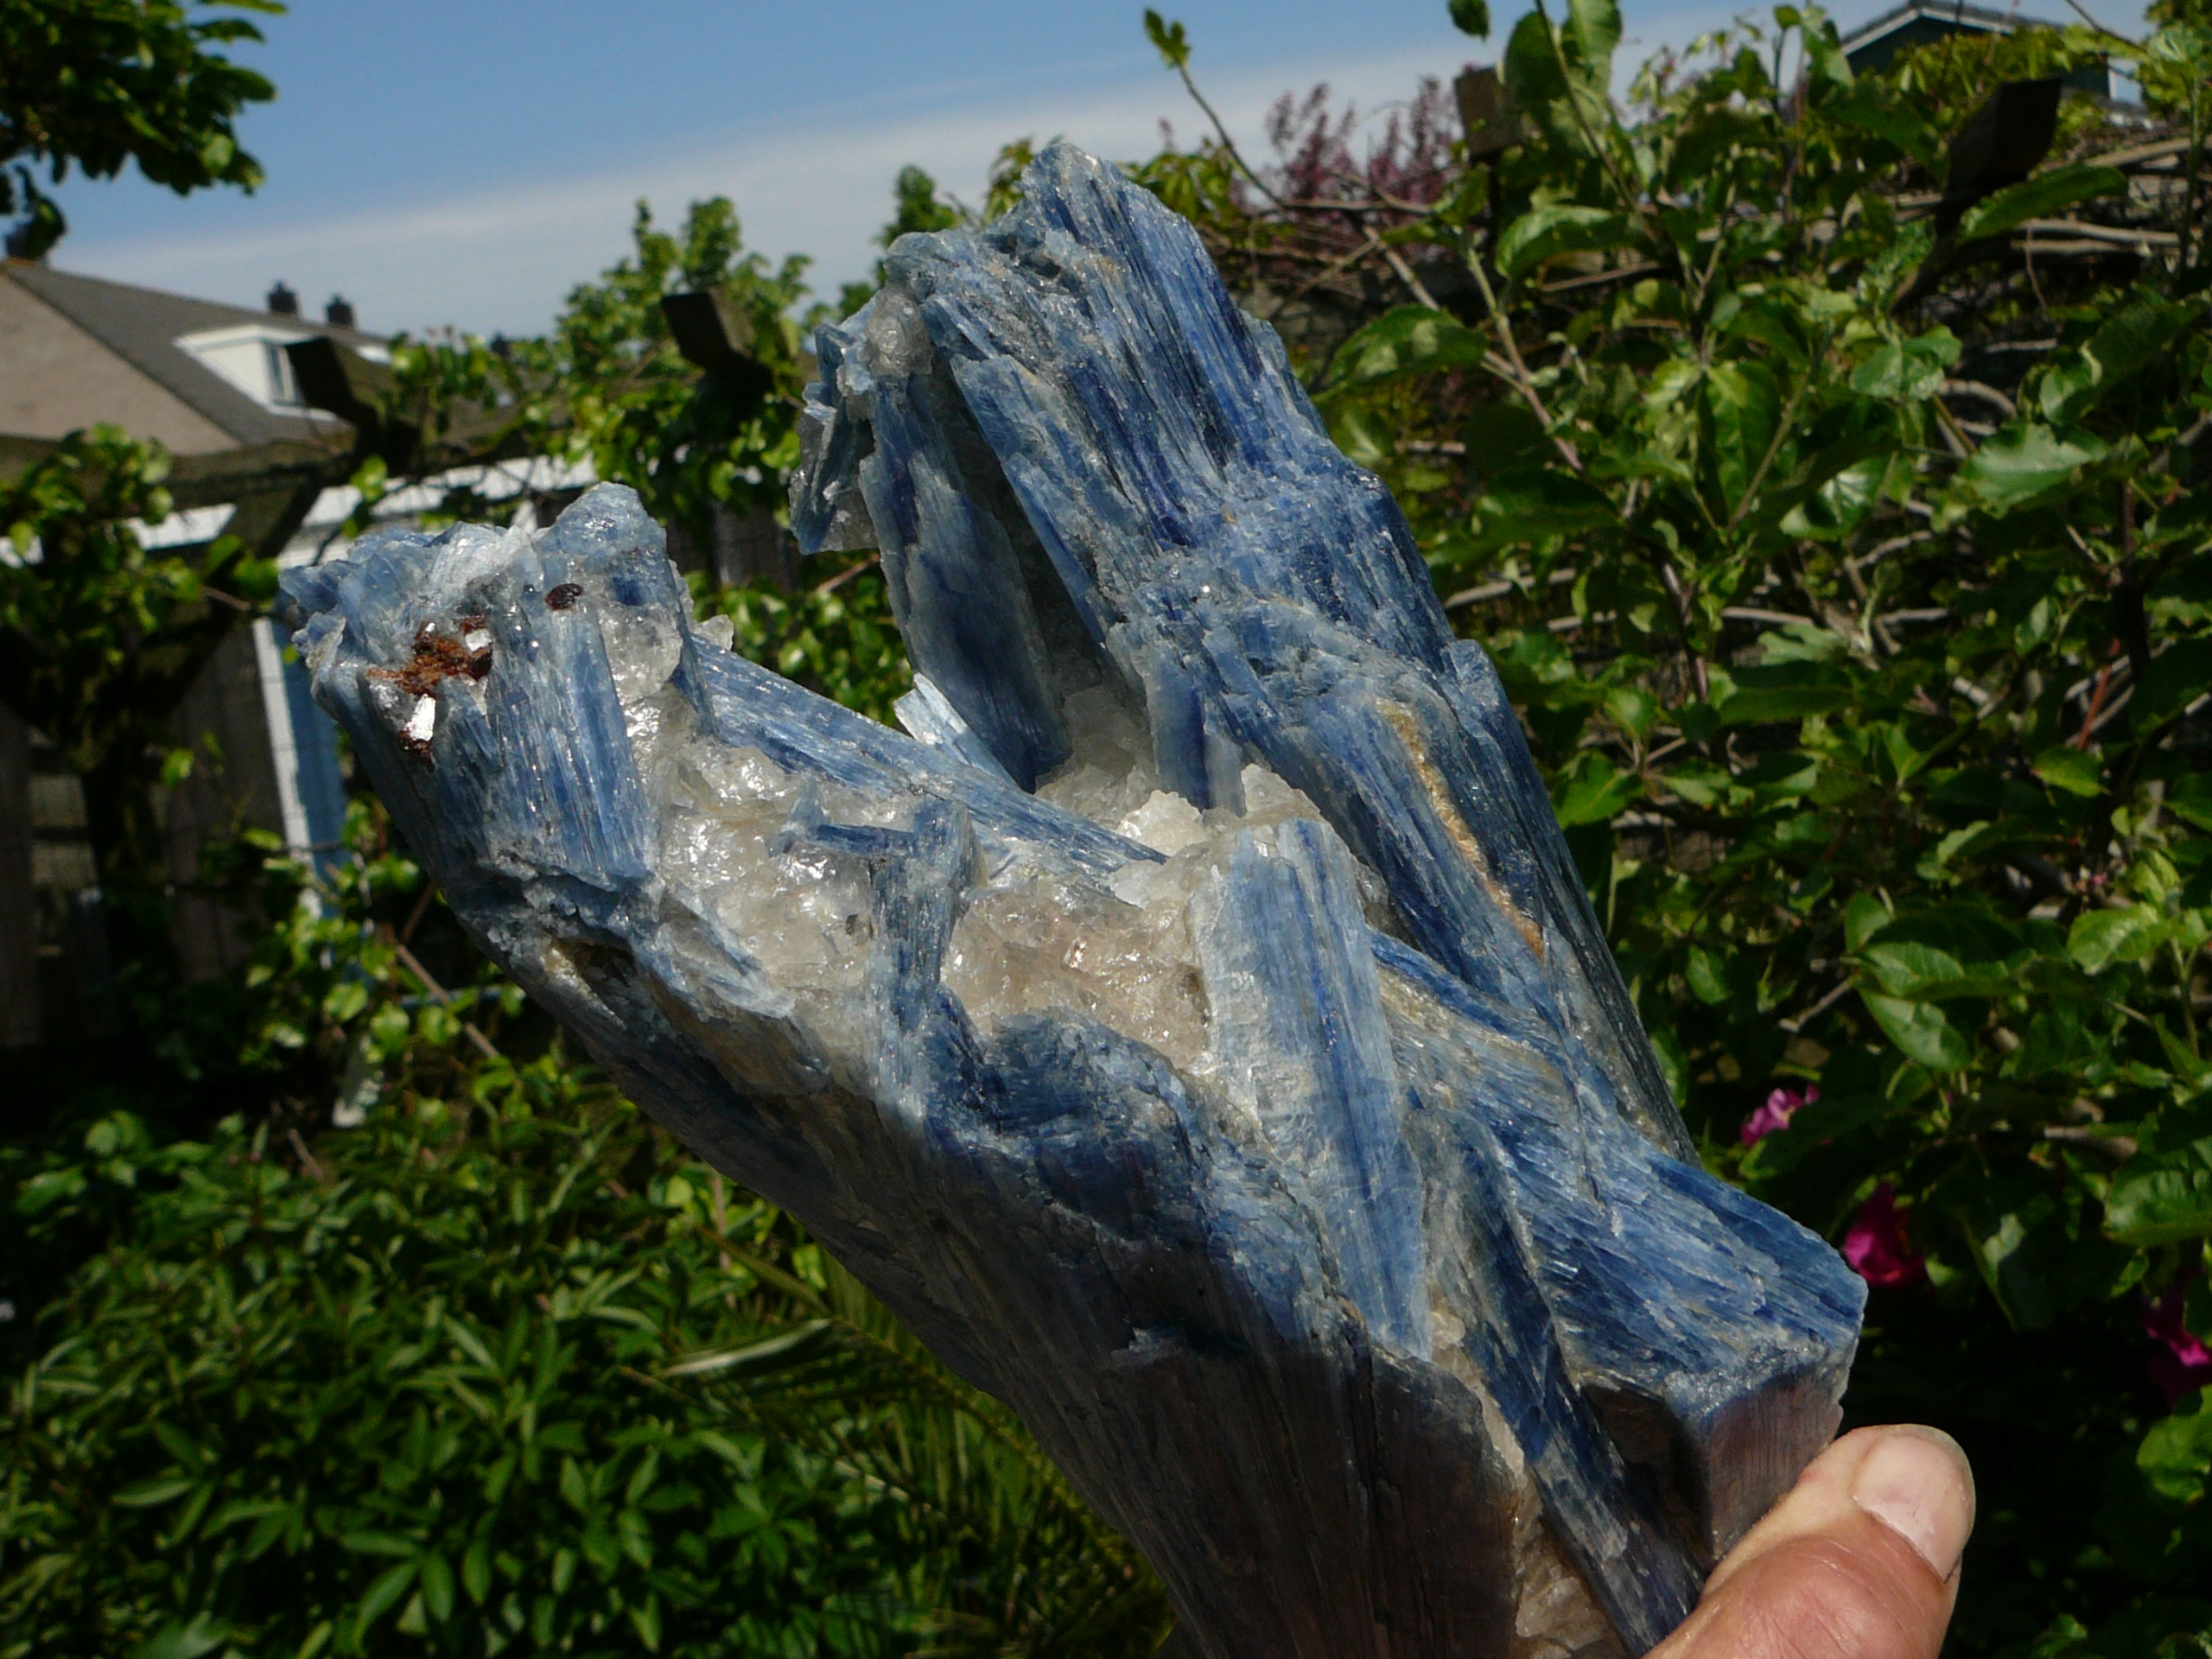 Blue kyanite crystals in a matrix of semi-transparent quartz